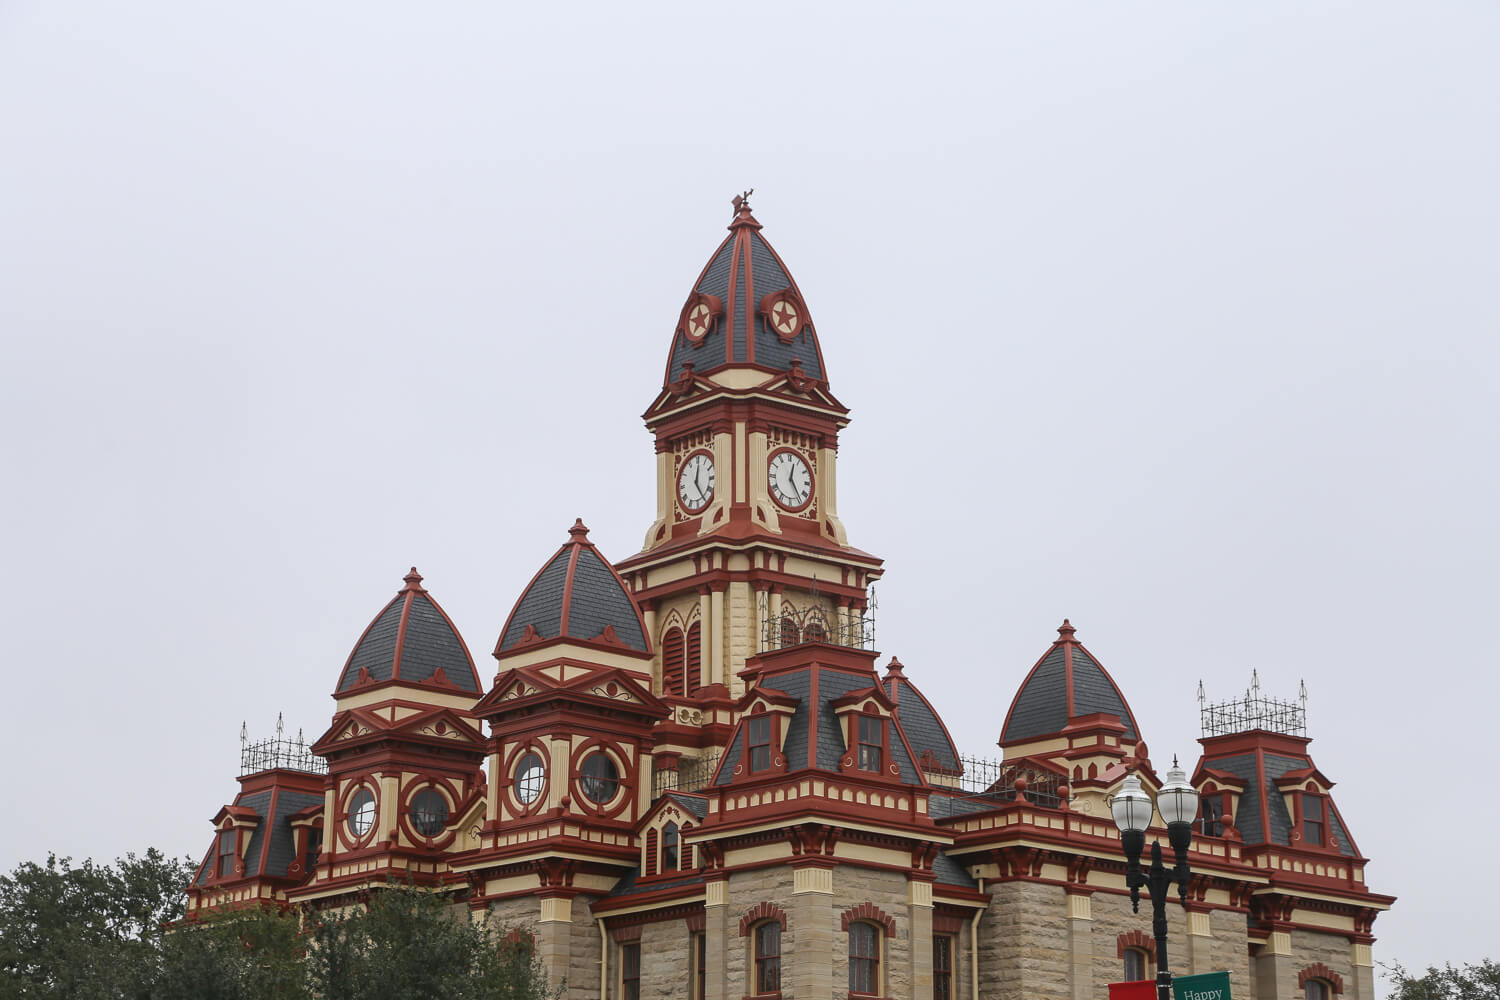 Historic courthouse in Lockhart Texas